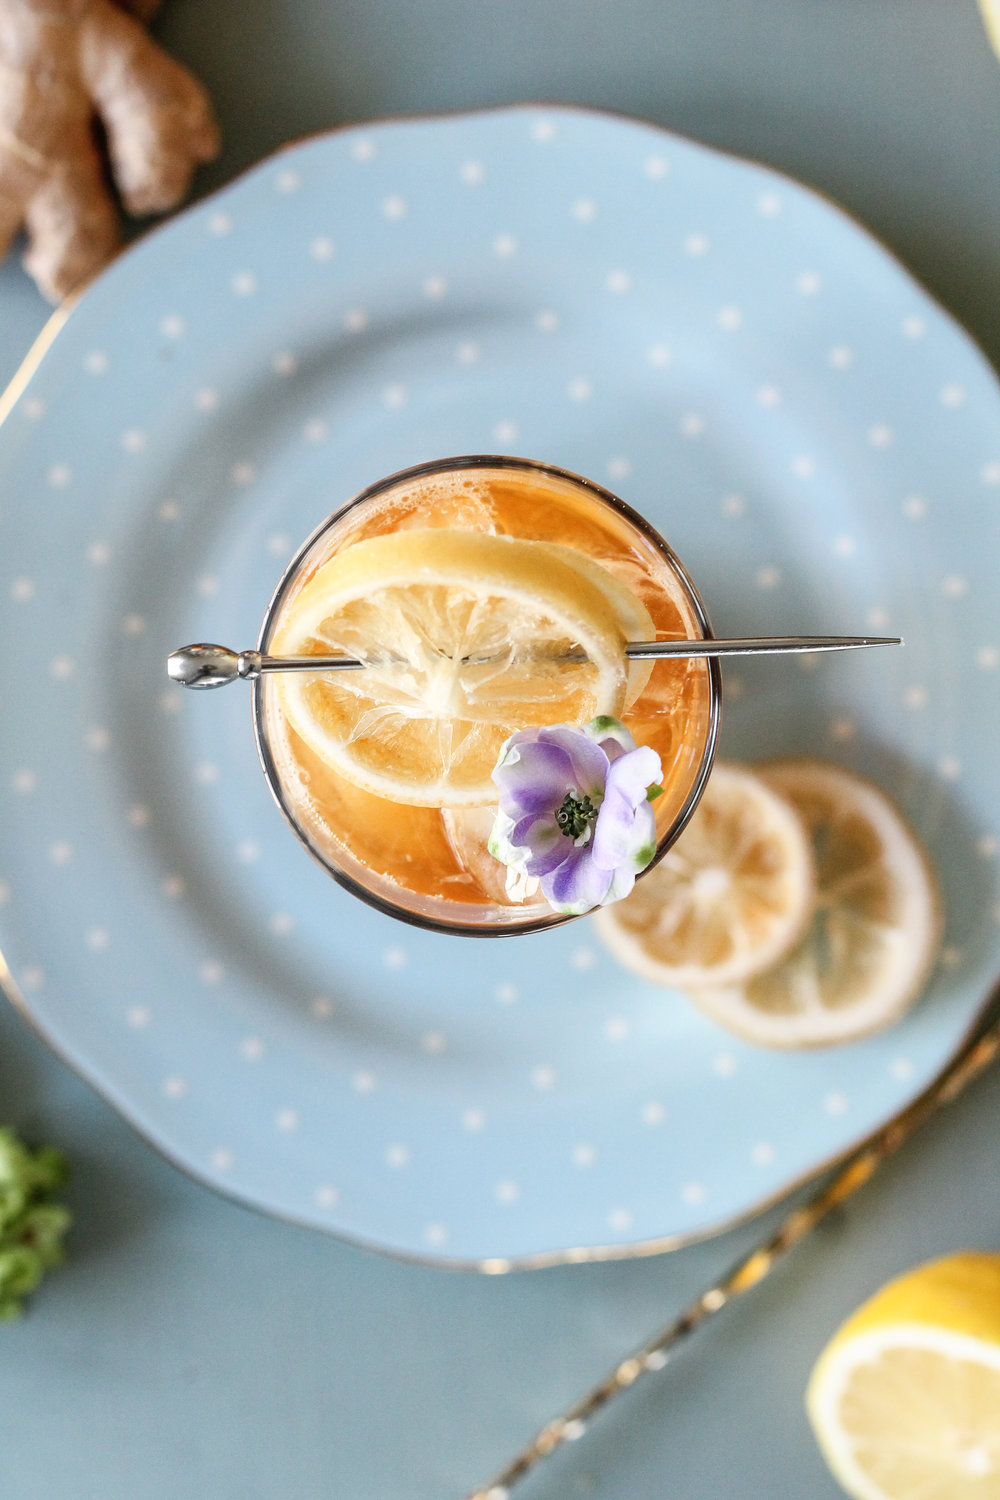 This reviving, spicy chai lemonade is the perfect way to beat the winter blues!   Find the super simple recipe on www.pedanticfoodie.com!